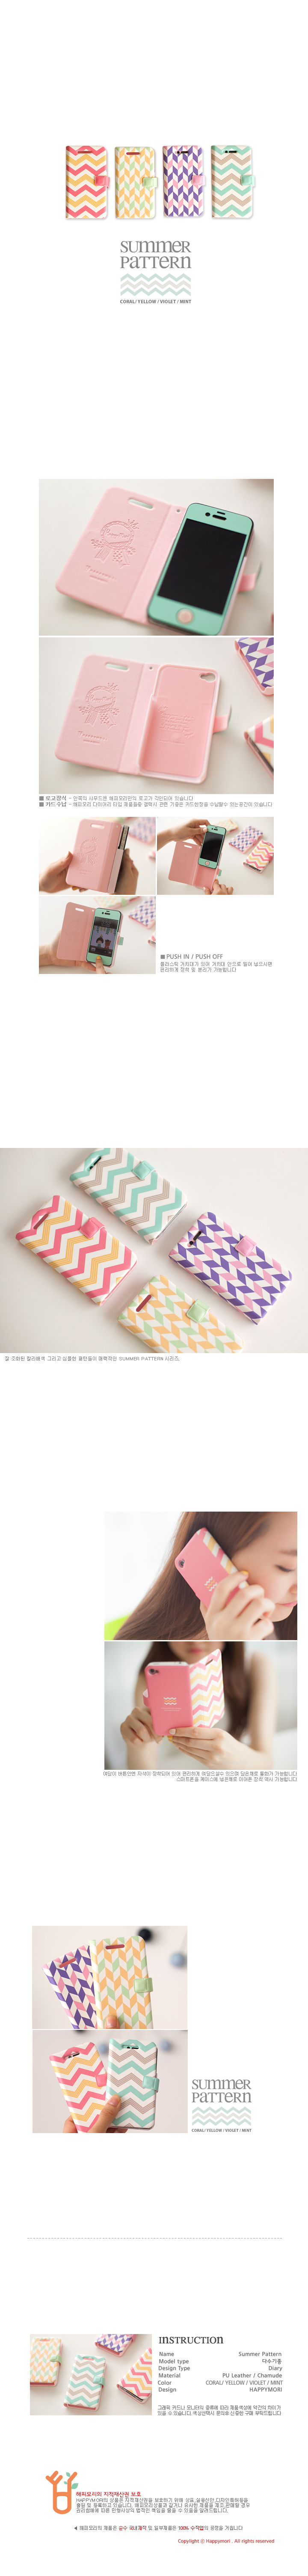 [HAPPYMORI] Flip Cover Case _ Summer Pattern(iPhone6Plus,iPhone6Plus_s,Galaxy S6Edge,Galaxy S6,Galaxy Note4)